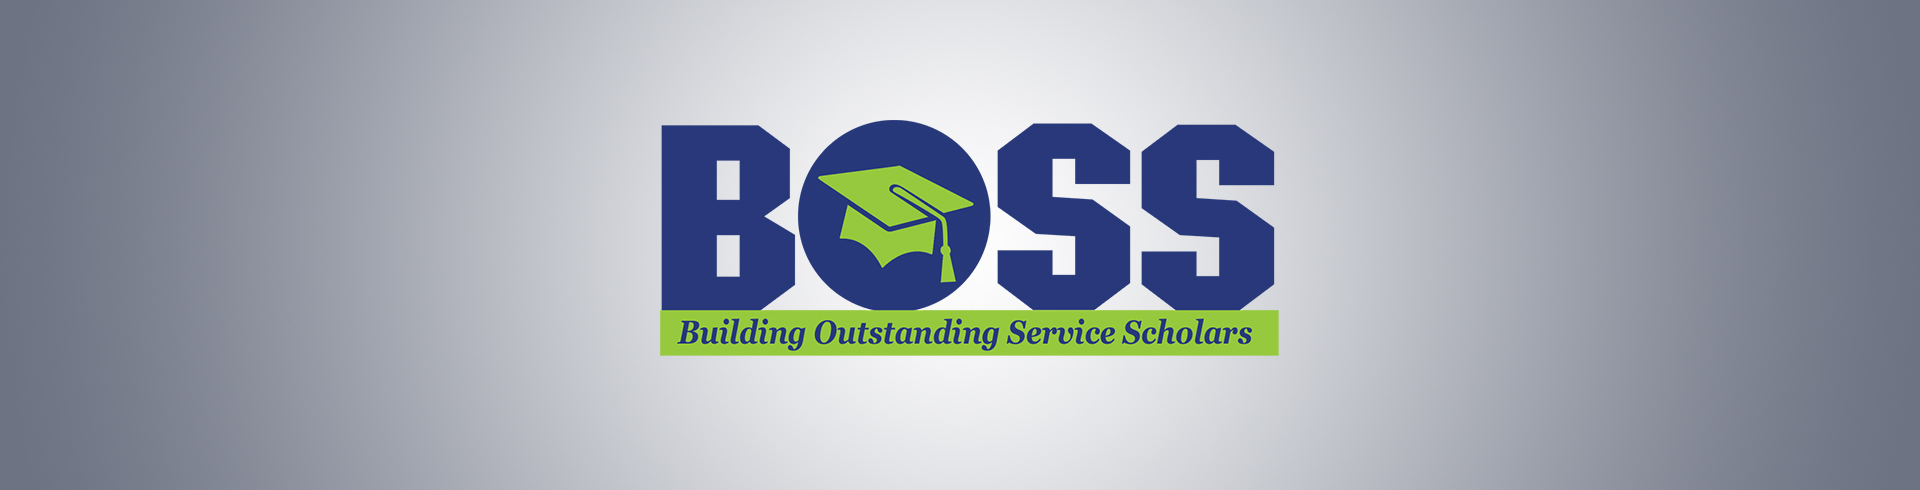 Building Outstanding Service Scholars Program (BOSS) program banner photo.